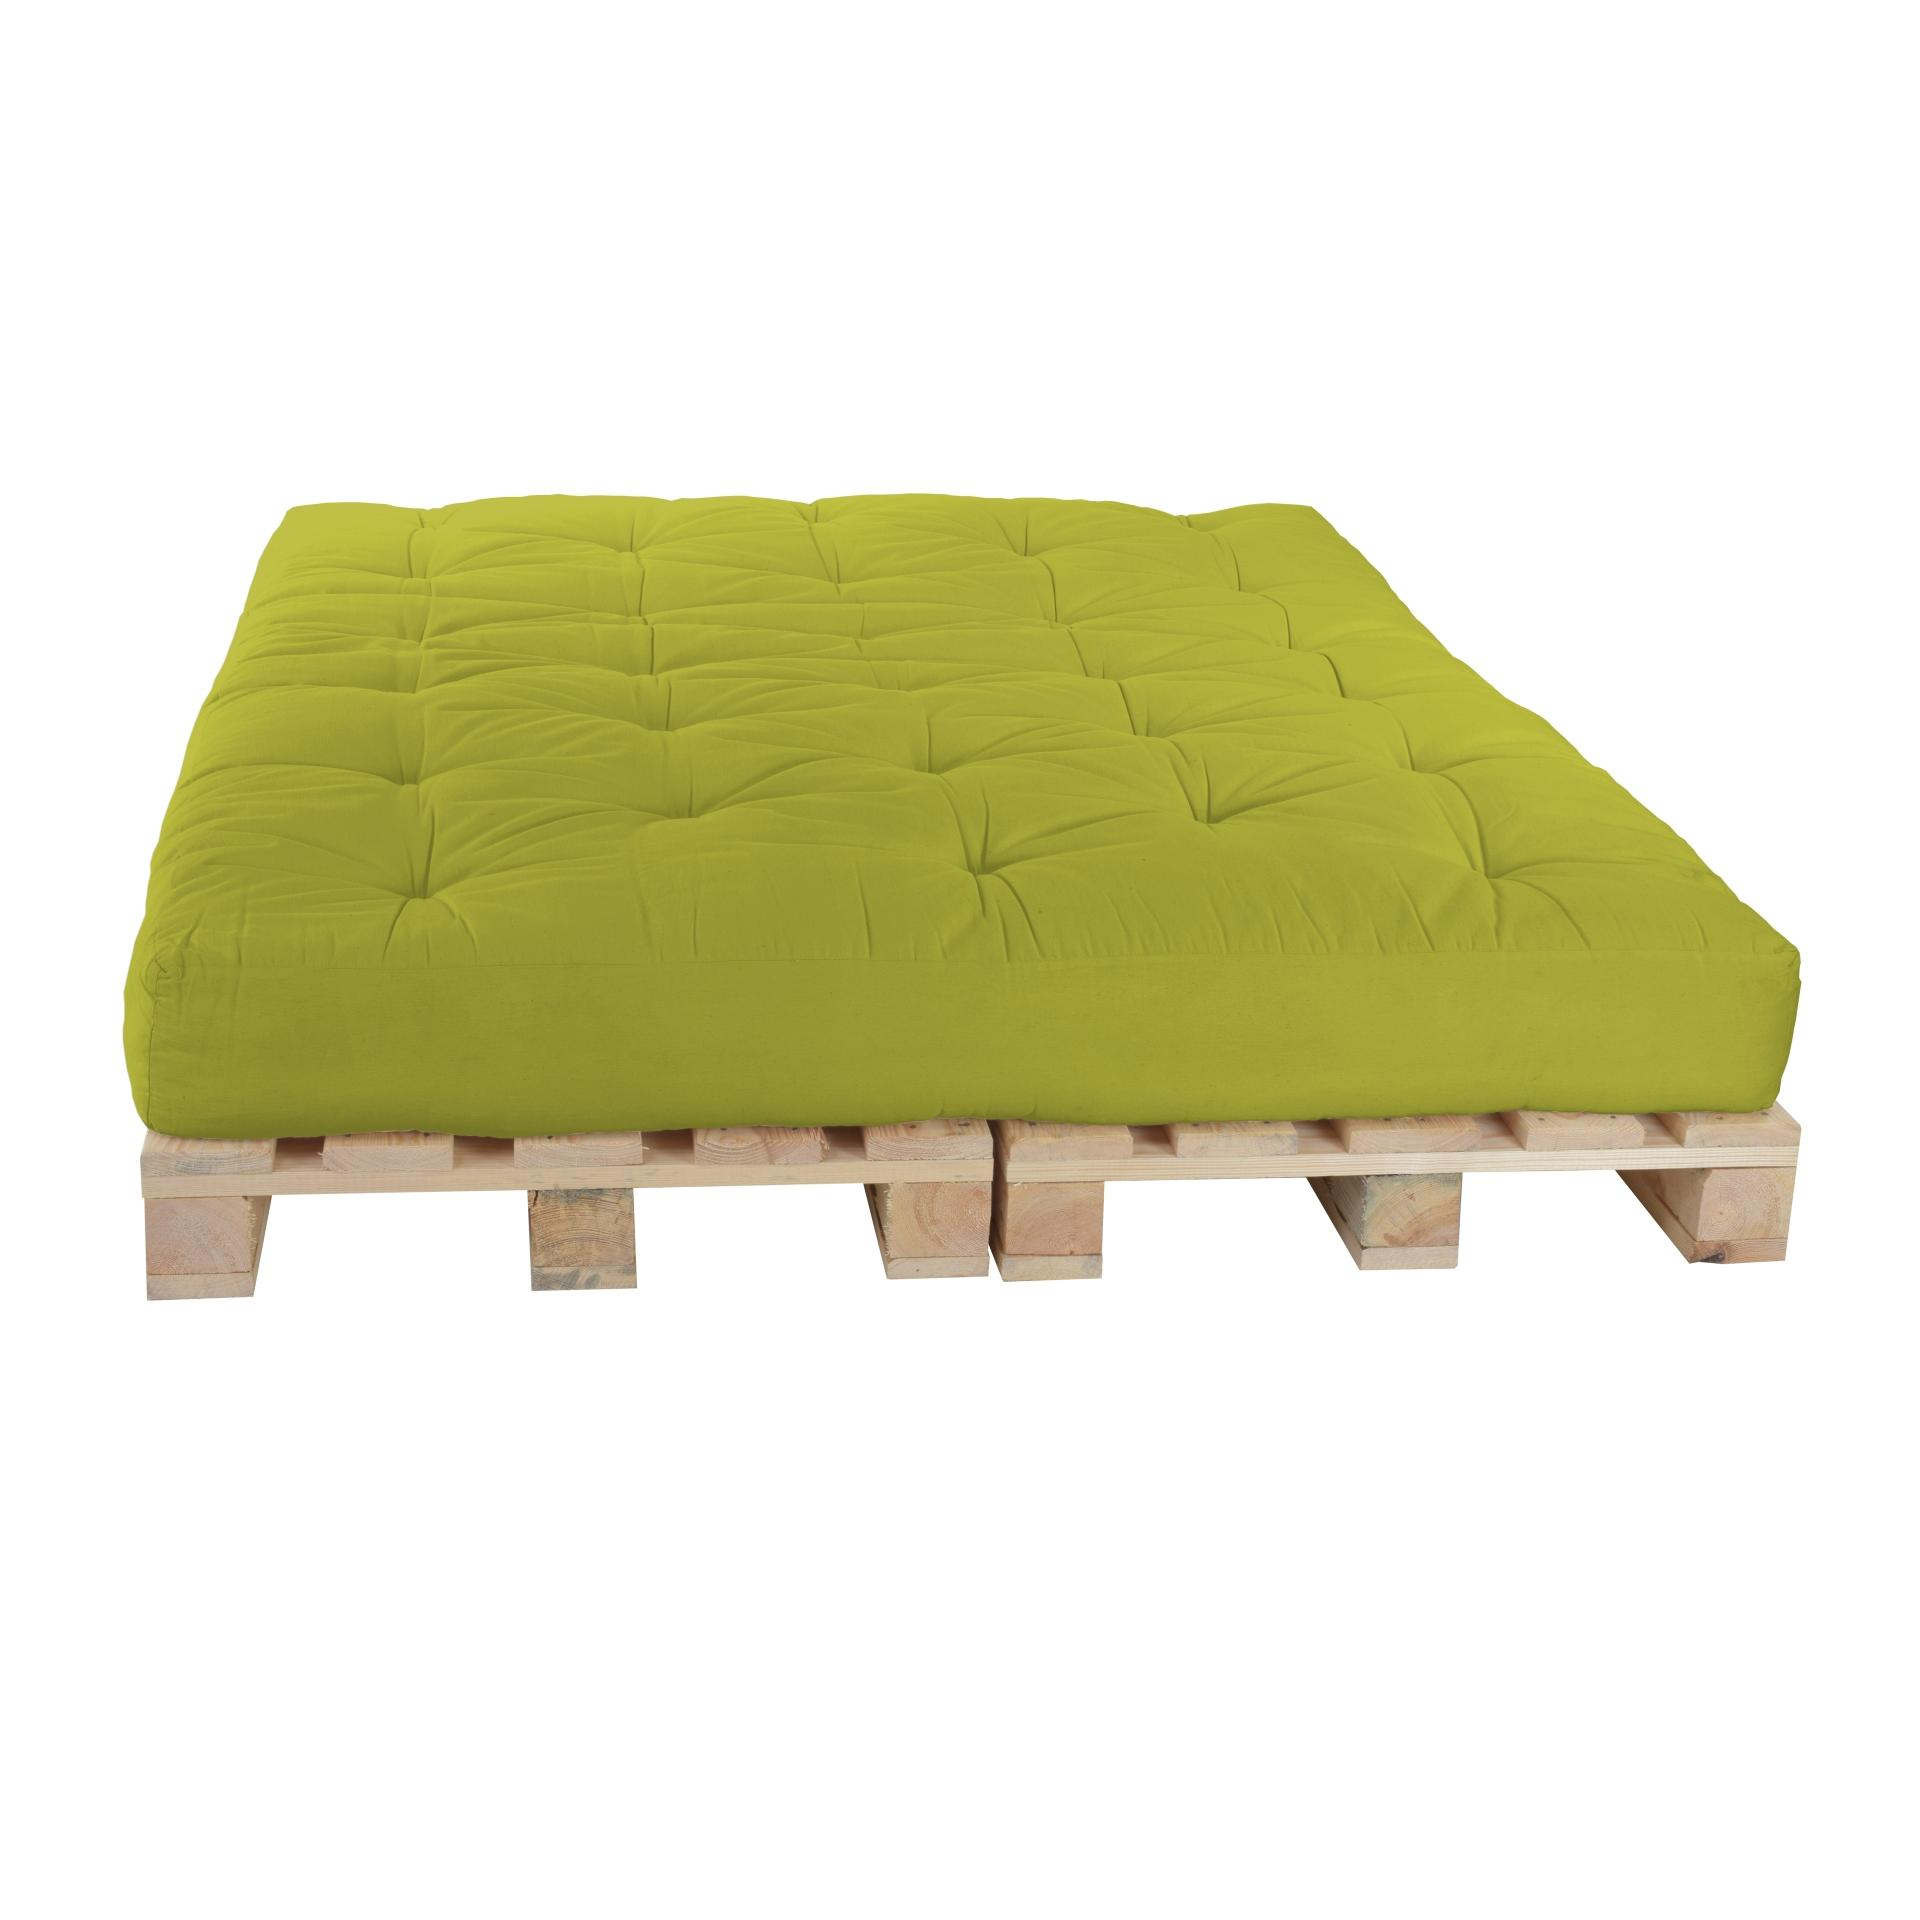 Futons Berlin Pallet Bed 160 X 240 Cm Together With Pallets Color F086 Lime